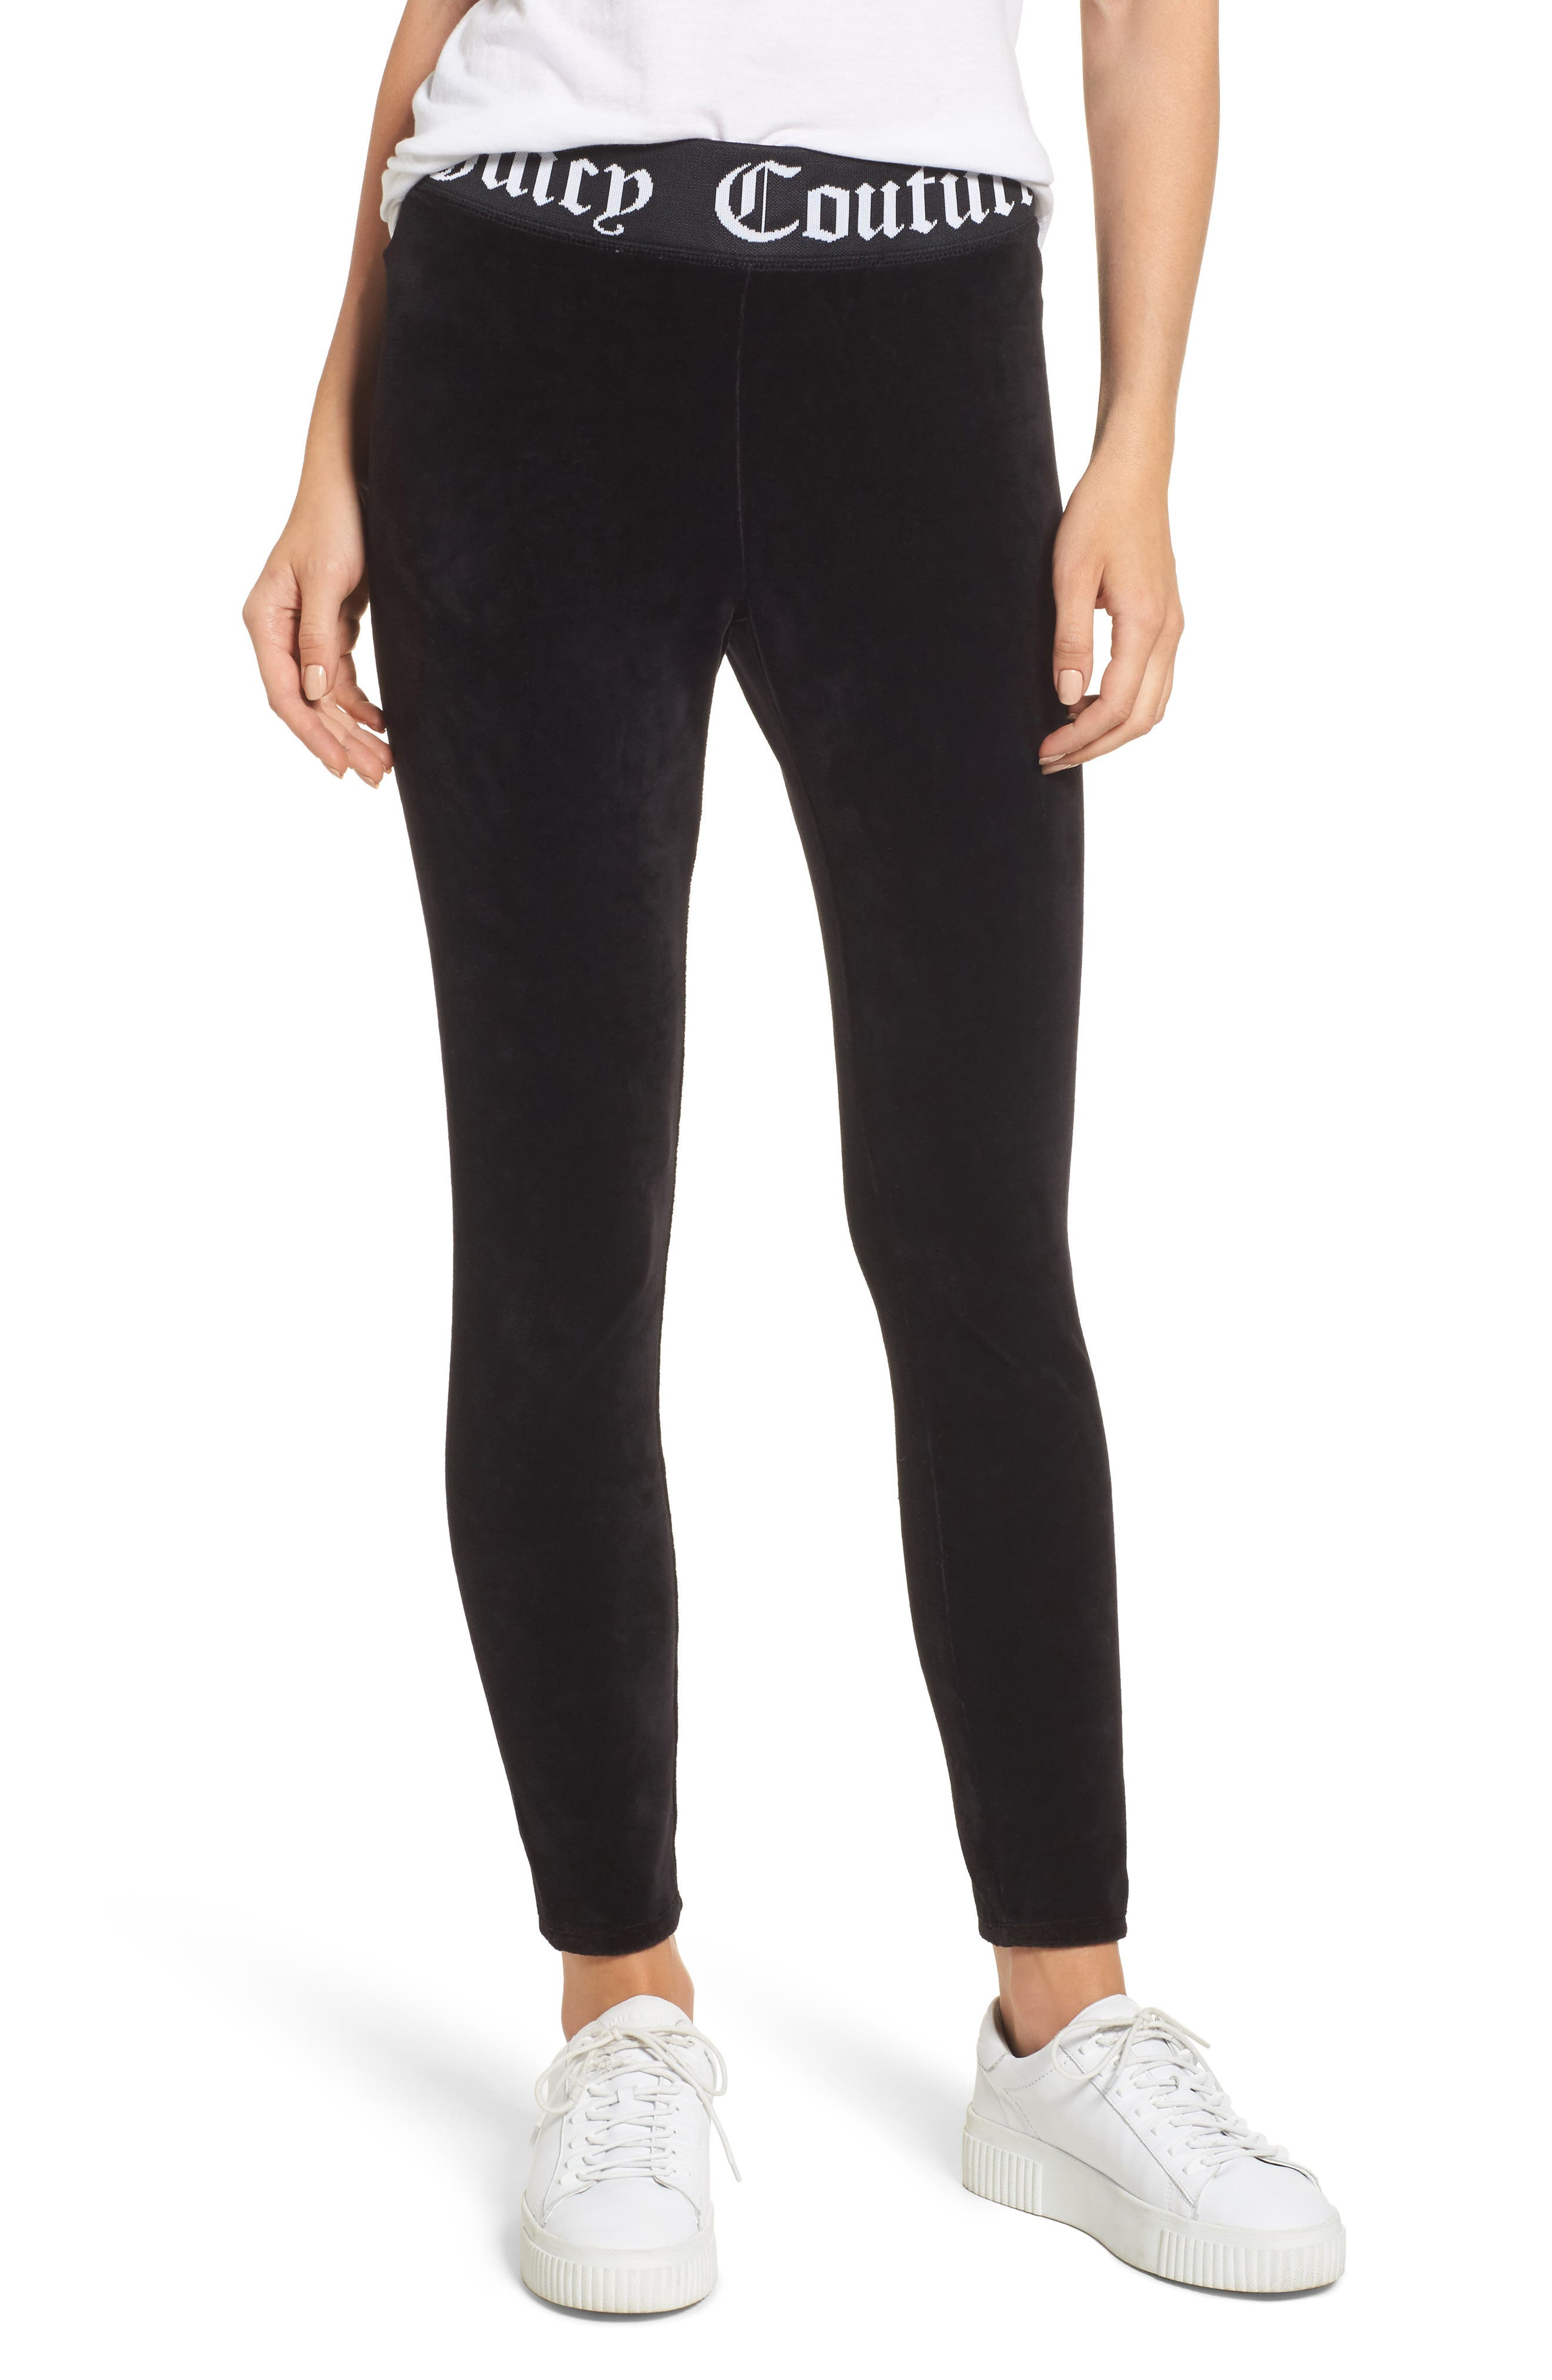 Juicy Couture Stretch Velour Leggings